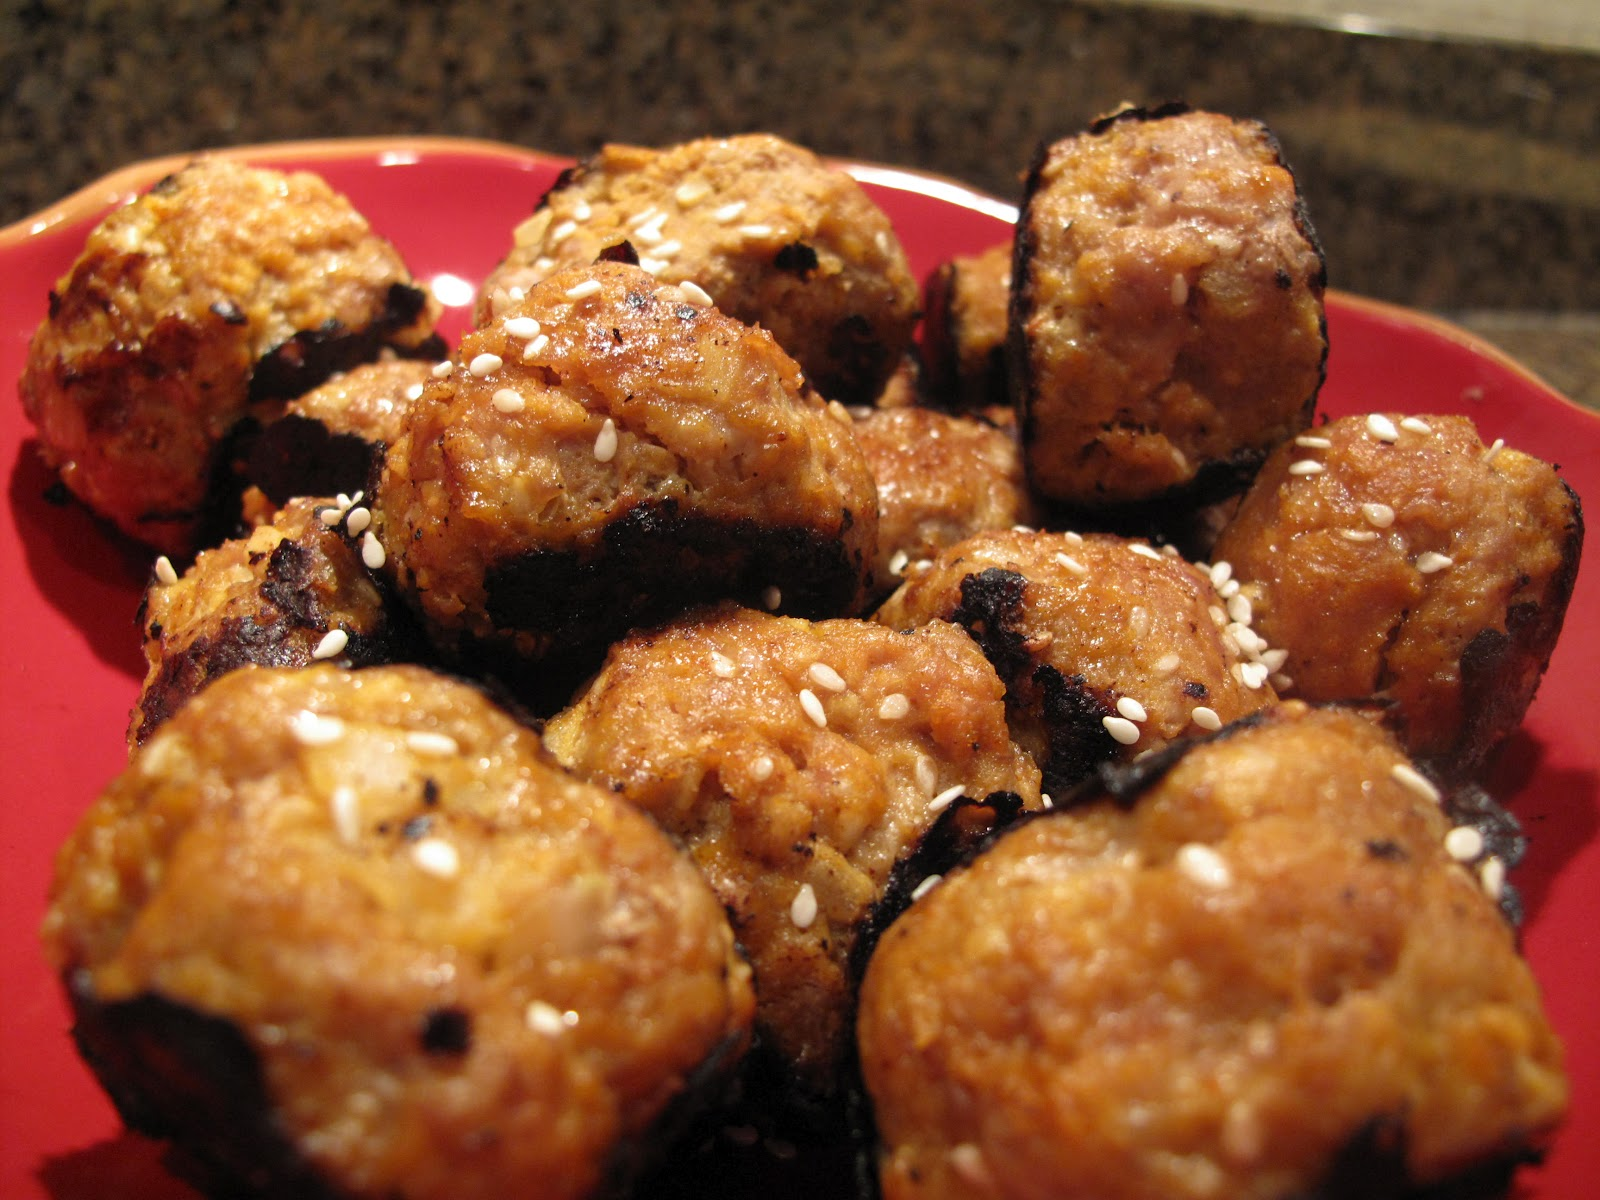 Shut Up, Let's Cook!: Grilled Turkey Meatballs